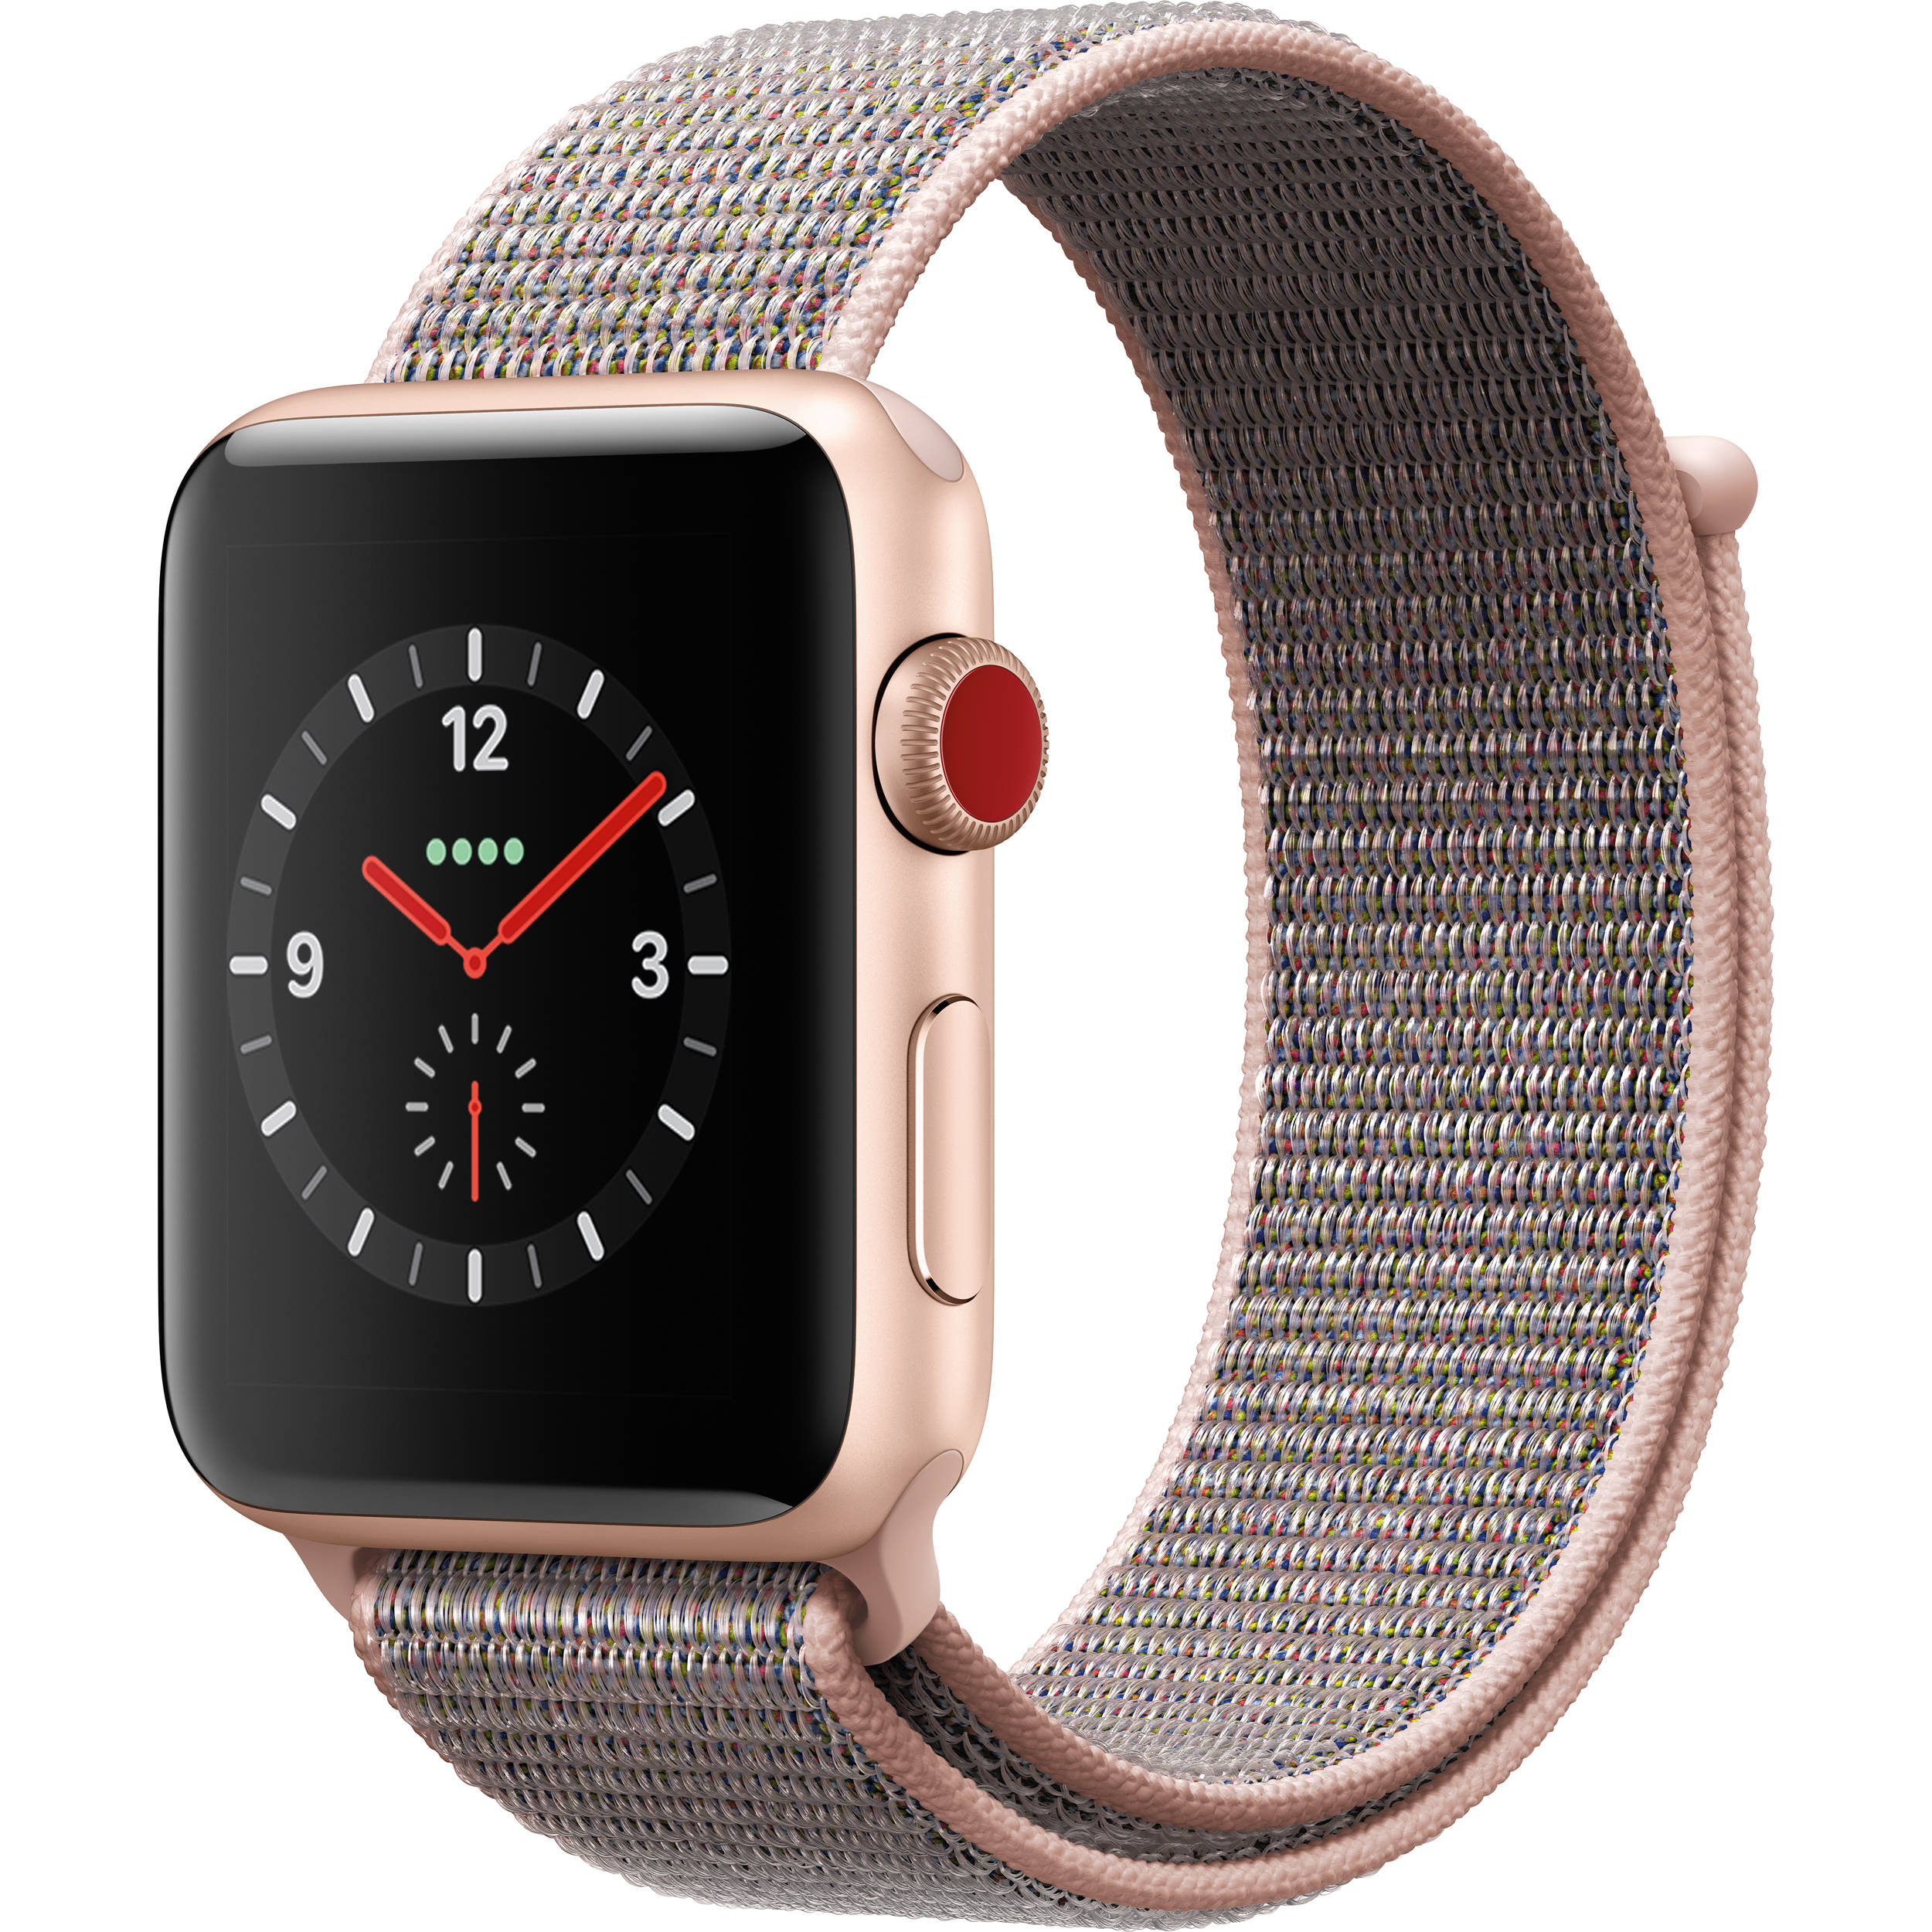 c517f74b6 Apple Watch Series 3 42mm Smartwatch MQK72LL/A B&H Photo Video